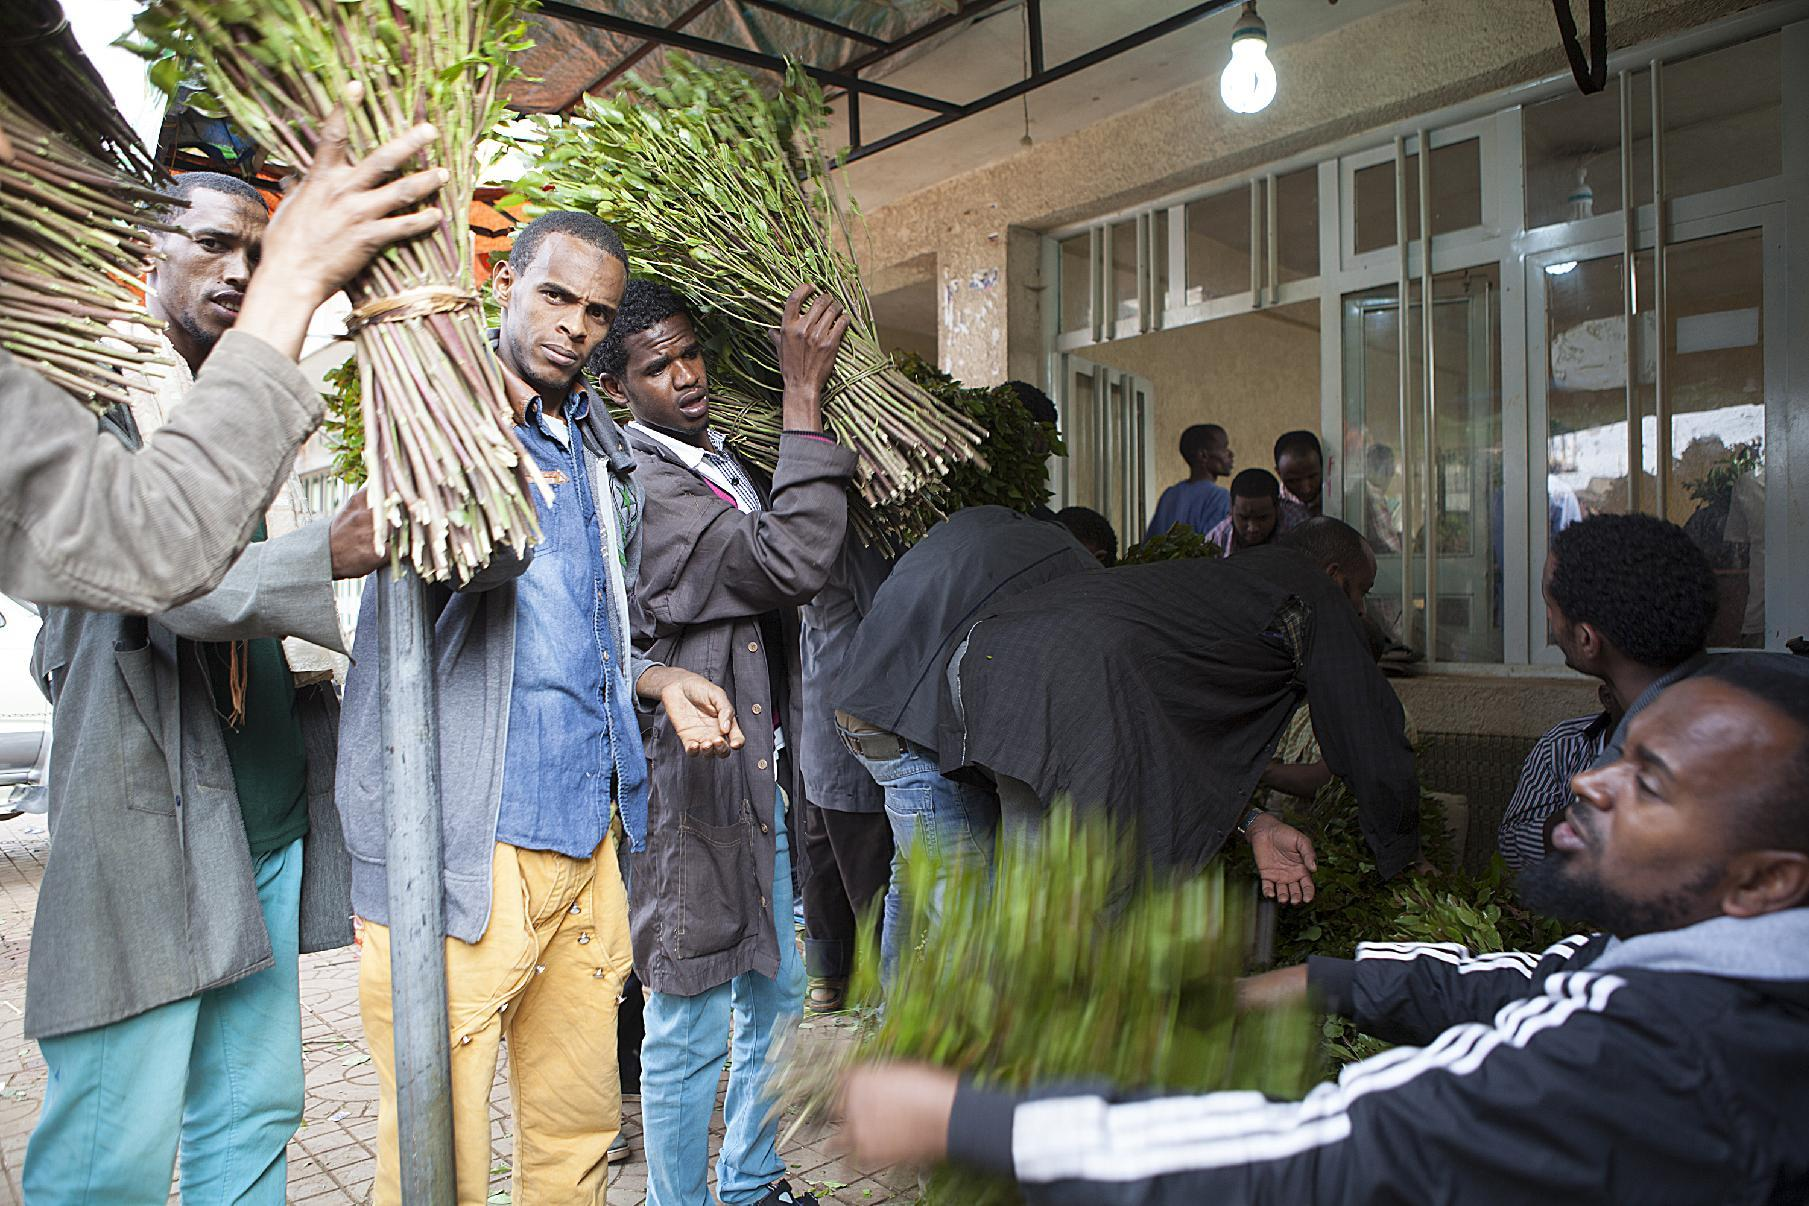 Ethiopia's herbal high struggles after foreign ban